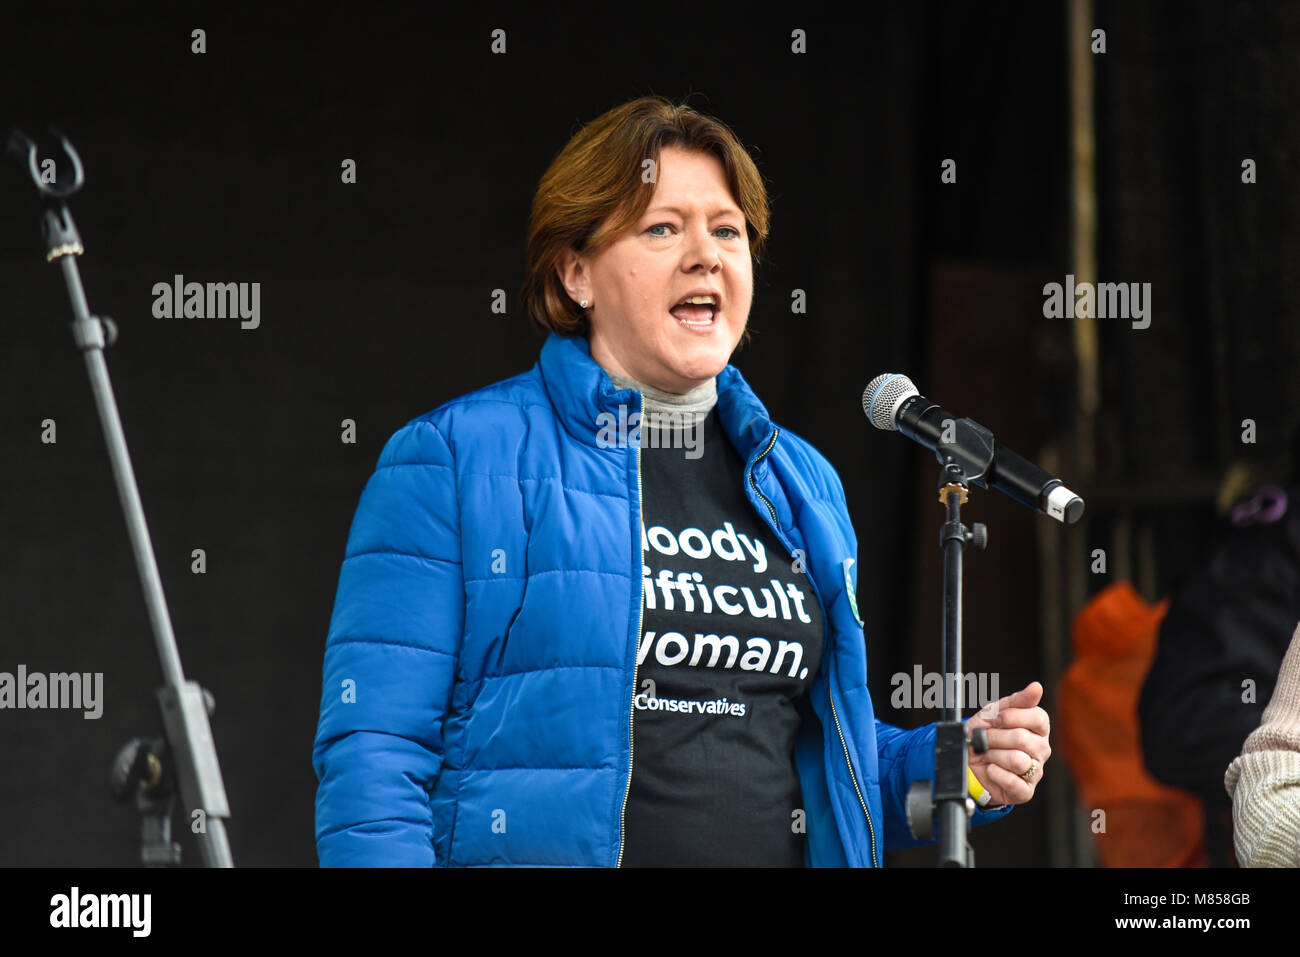 Maria Miller MP speaking at the March 4 Women women's equality protest organised by Care International in London. - Stock Image